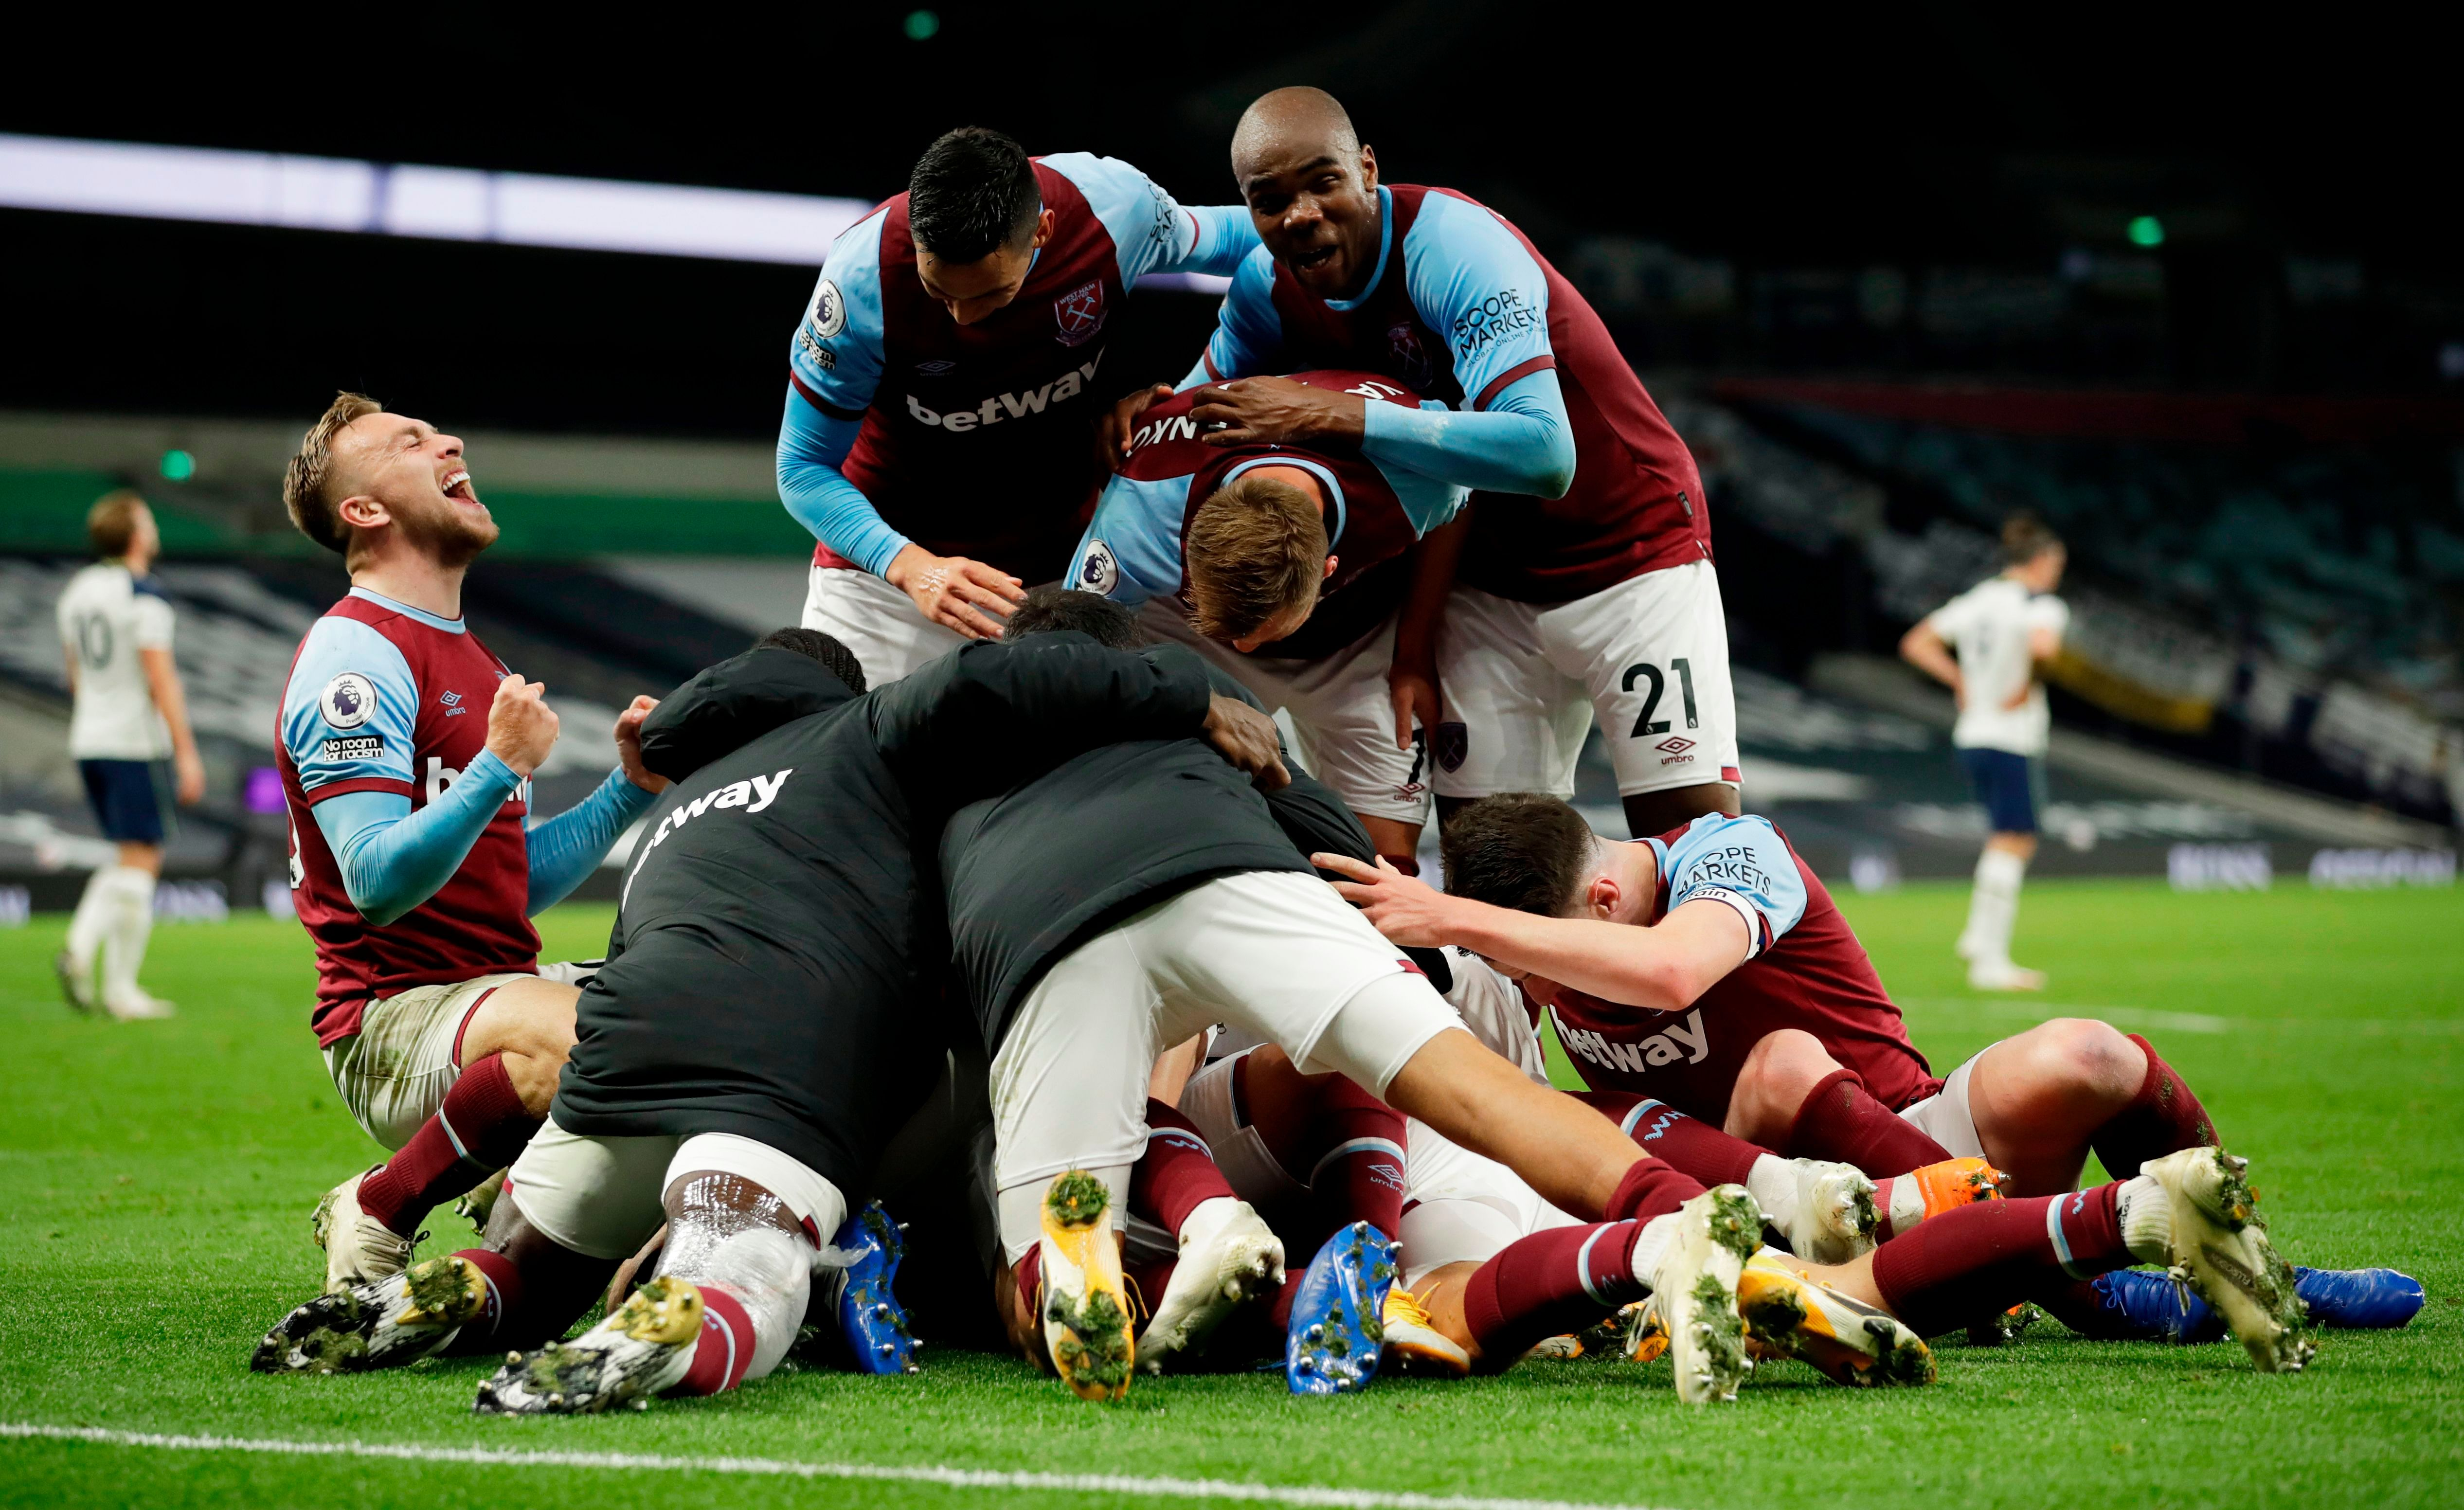 Where has it all gone right for West Ham this season?